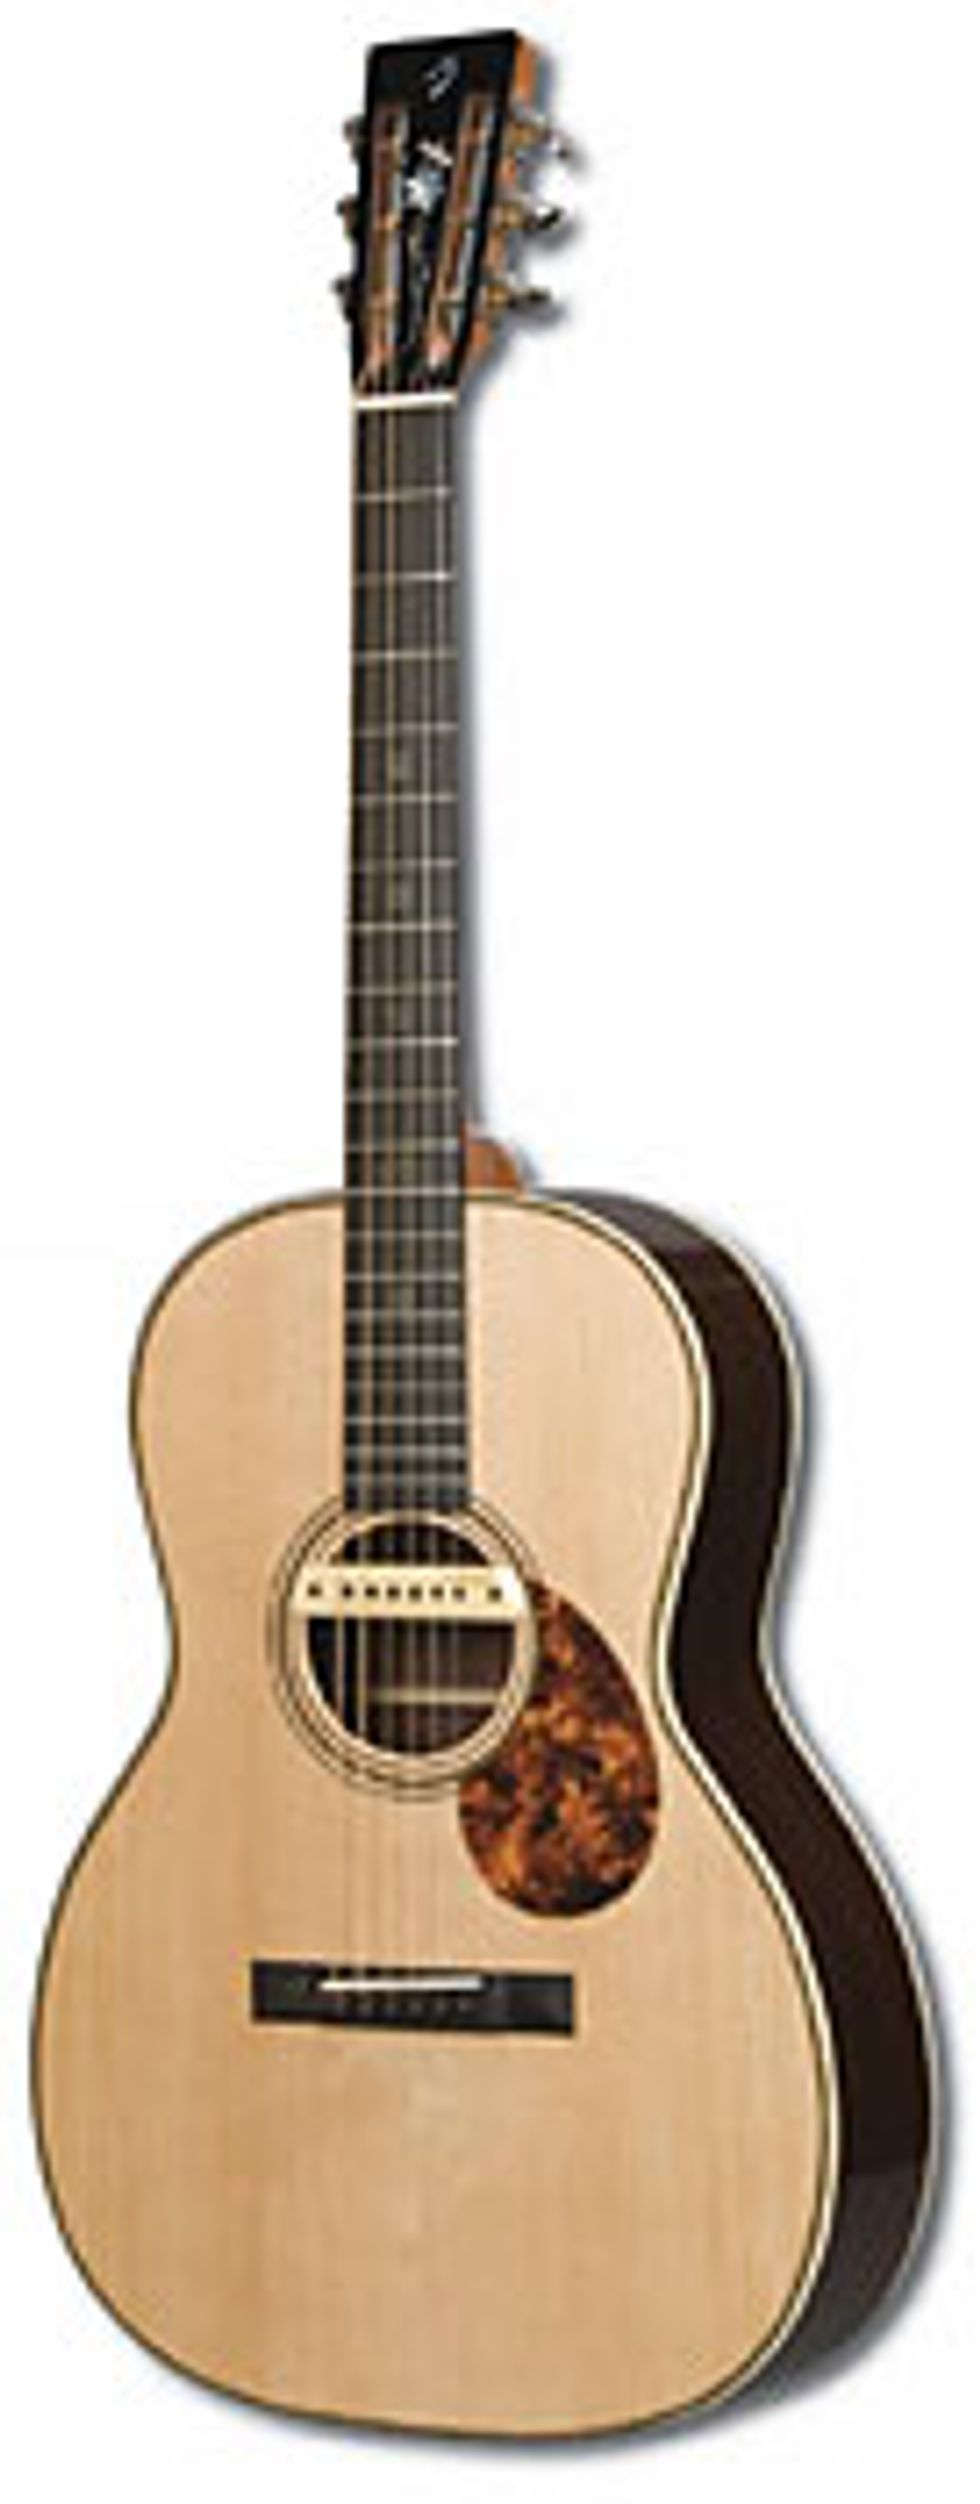 Breedlove Revival 000 Jeff Tweedy Limited Edition Guitar